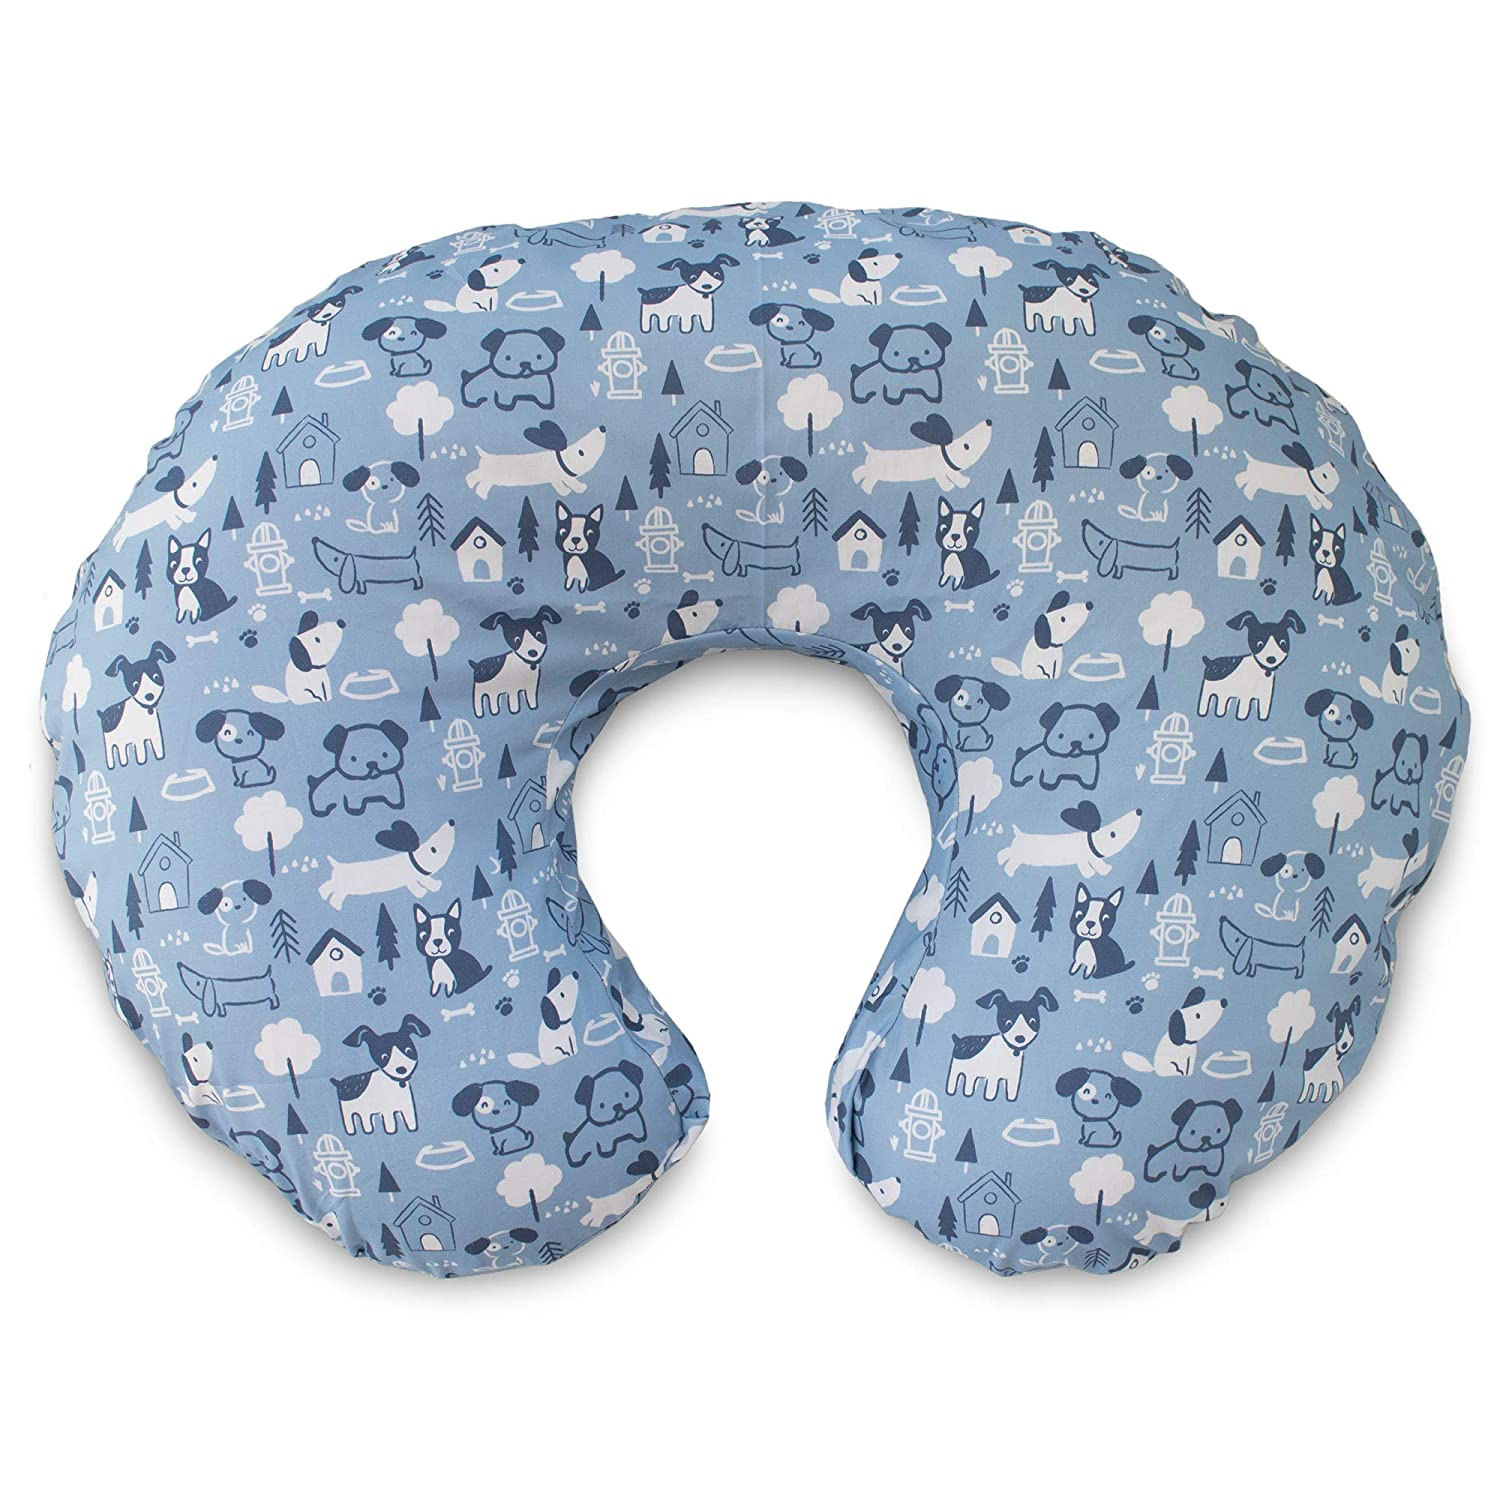 Boppy Cotton Blend Nursing Pillow and Positioner Slipcover, Blue Dog Park The Boppy Company 3100488K 6PK